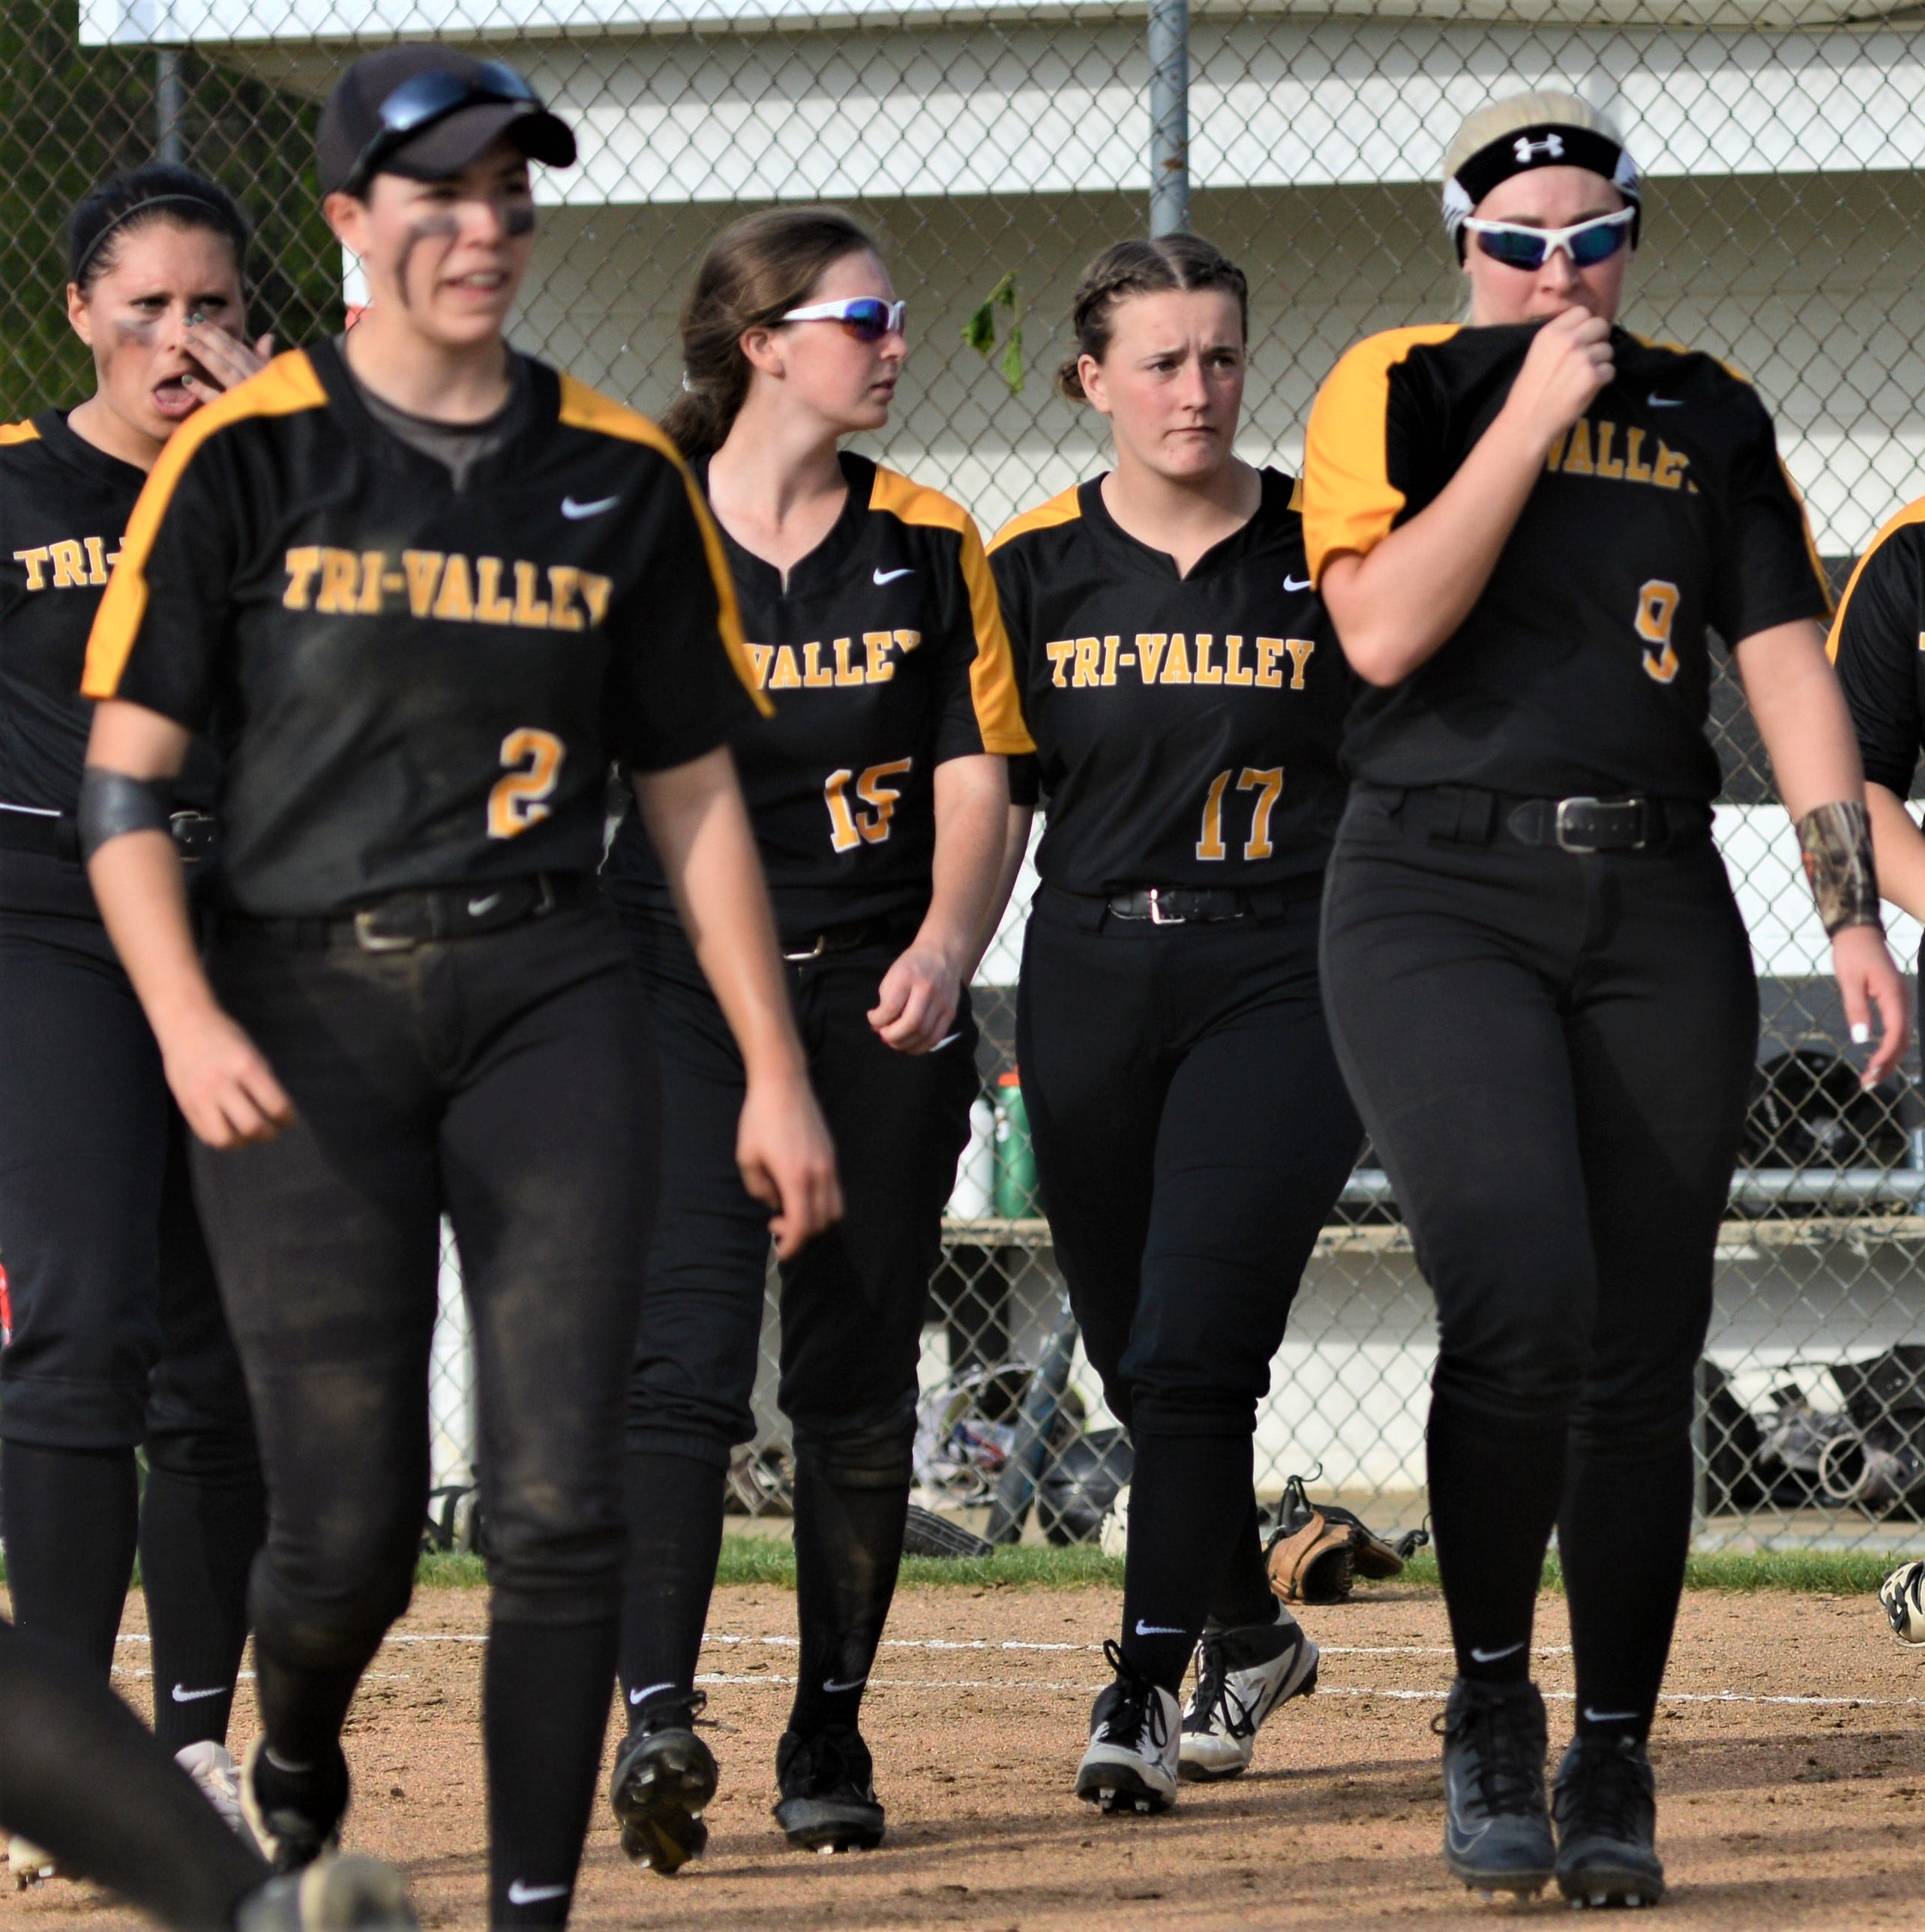 Tri-Valley's season ends after River View rally